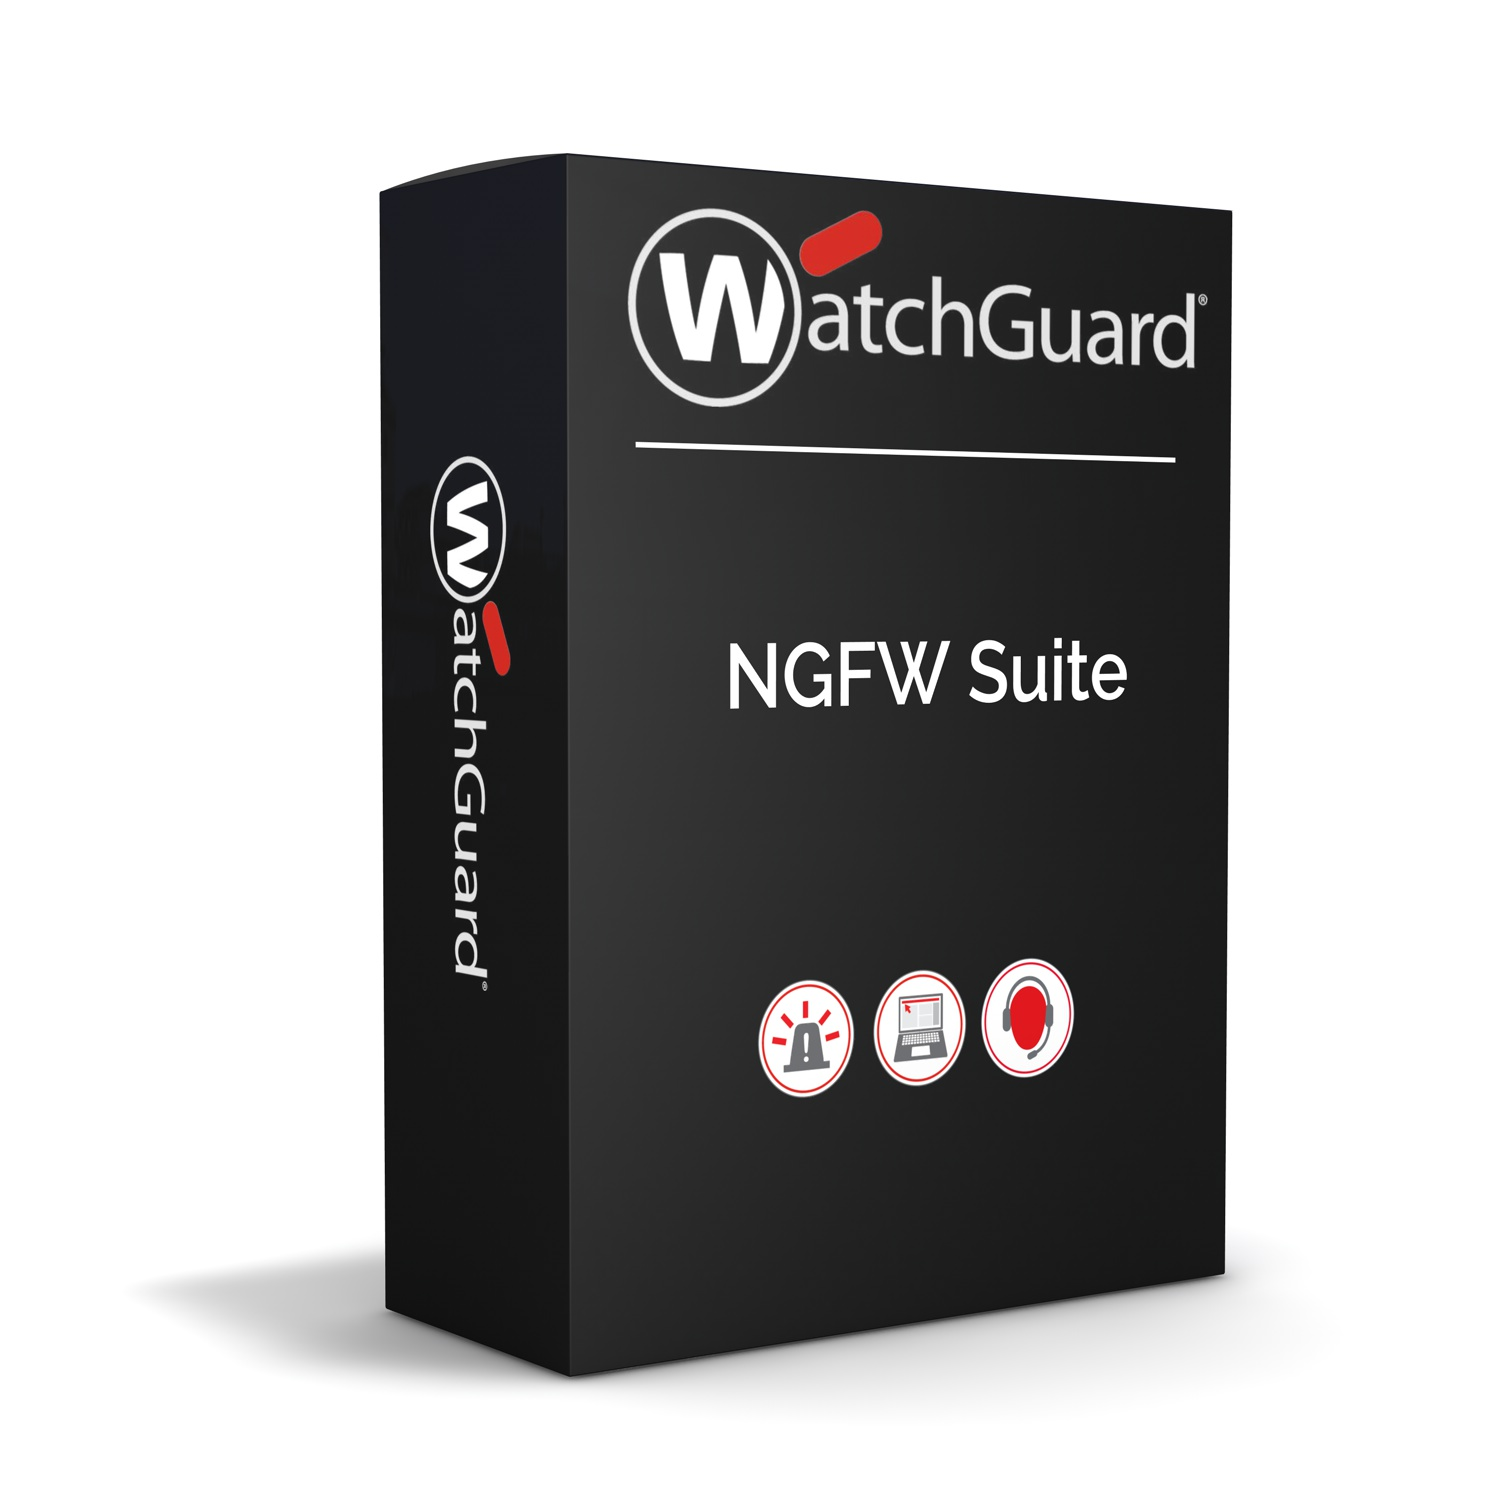 WatchGuard NGFW Suite Renewal/Upgrade 3-yr for Firebox M4600